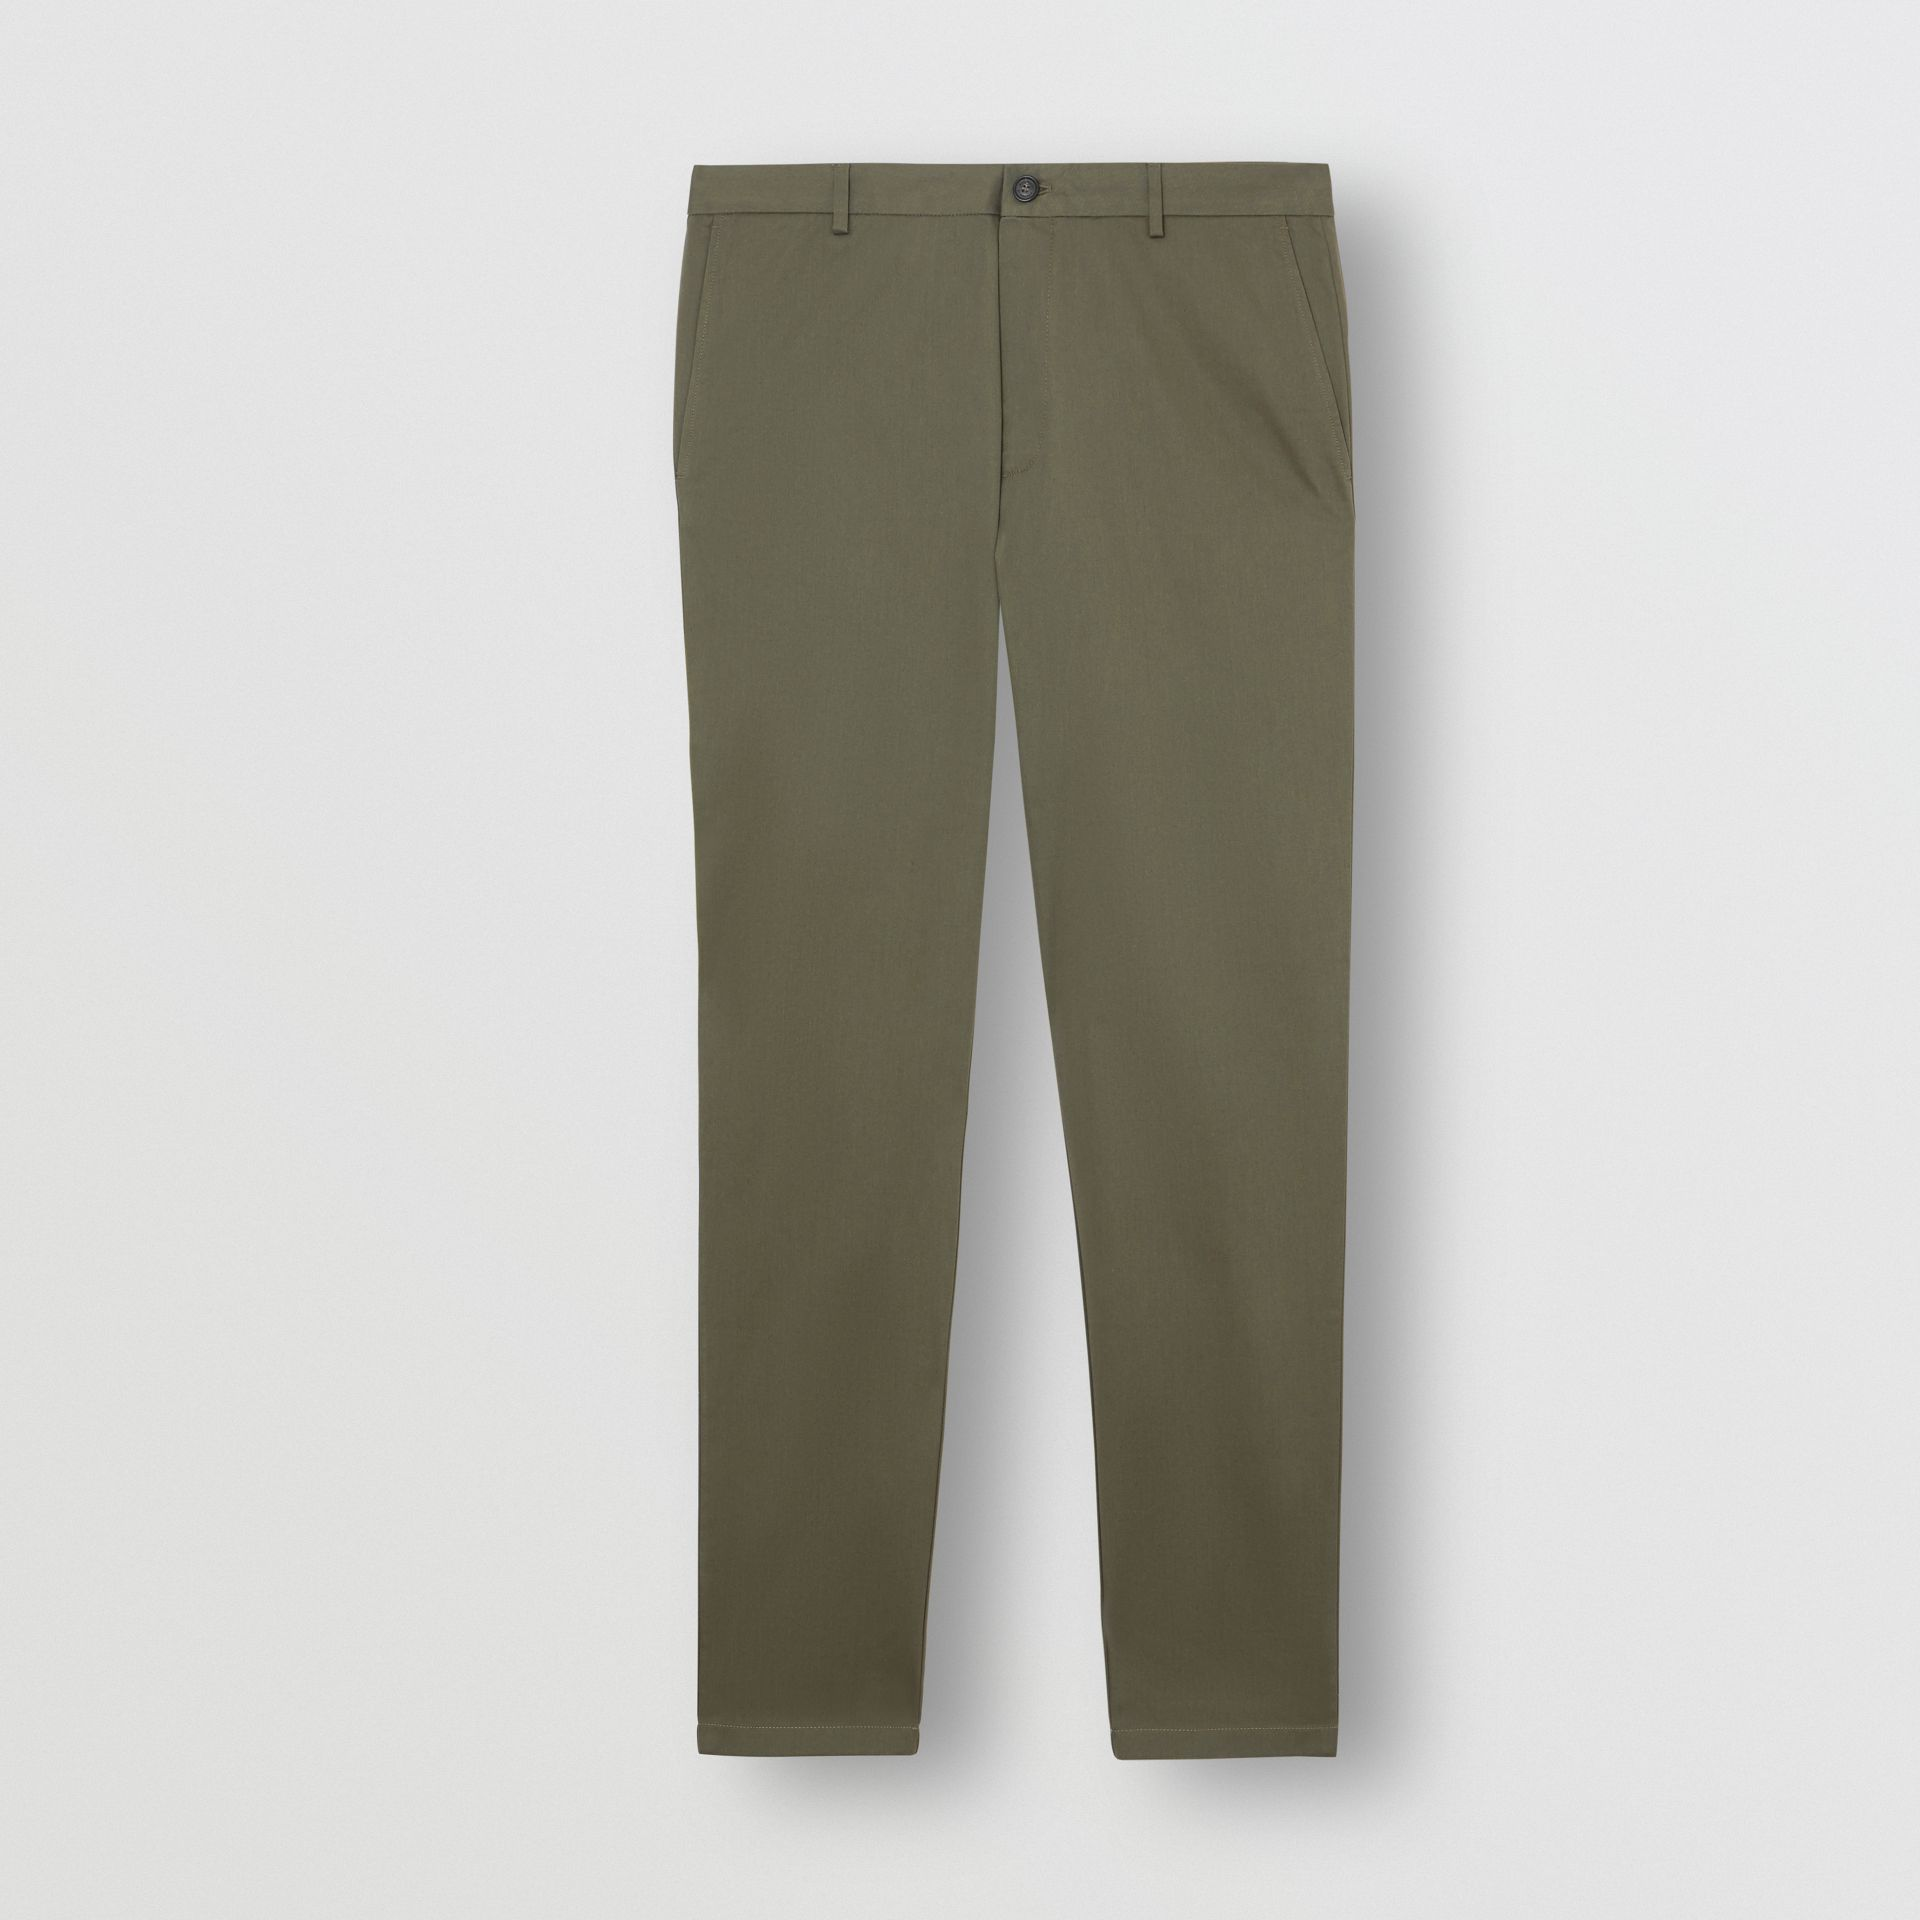 Slim Fit Cotton Chinos in Military Green - Men | Burberry United Kingdom - gallery image 3